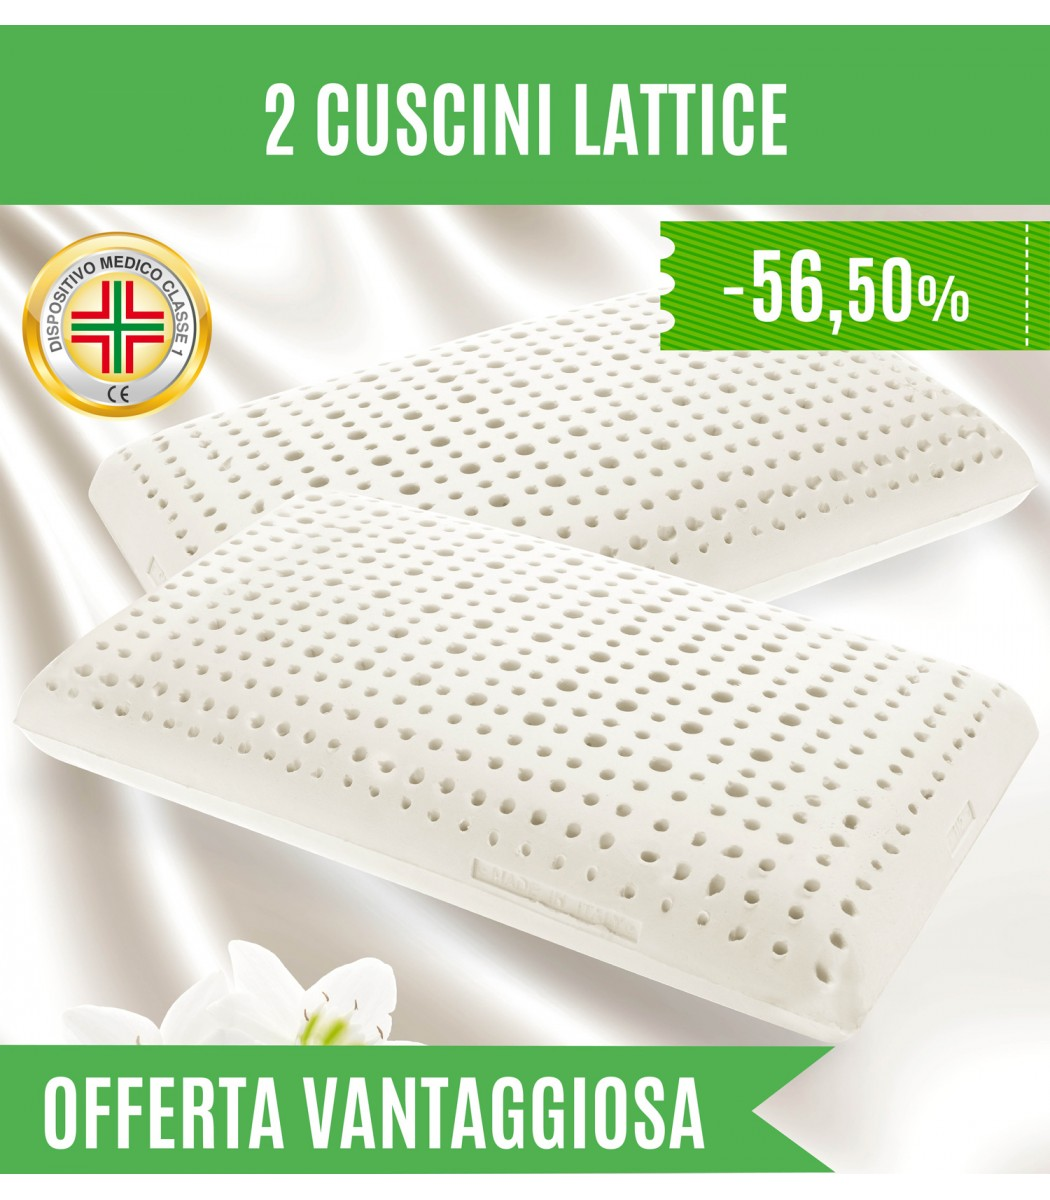 Letto In Lattice Offerta Cuscini Lattice